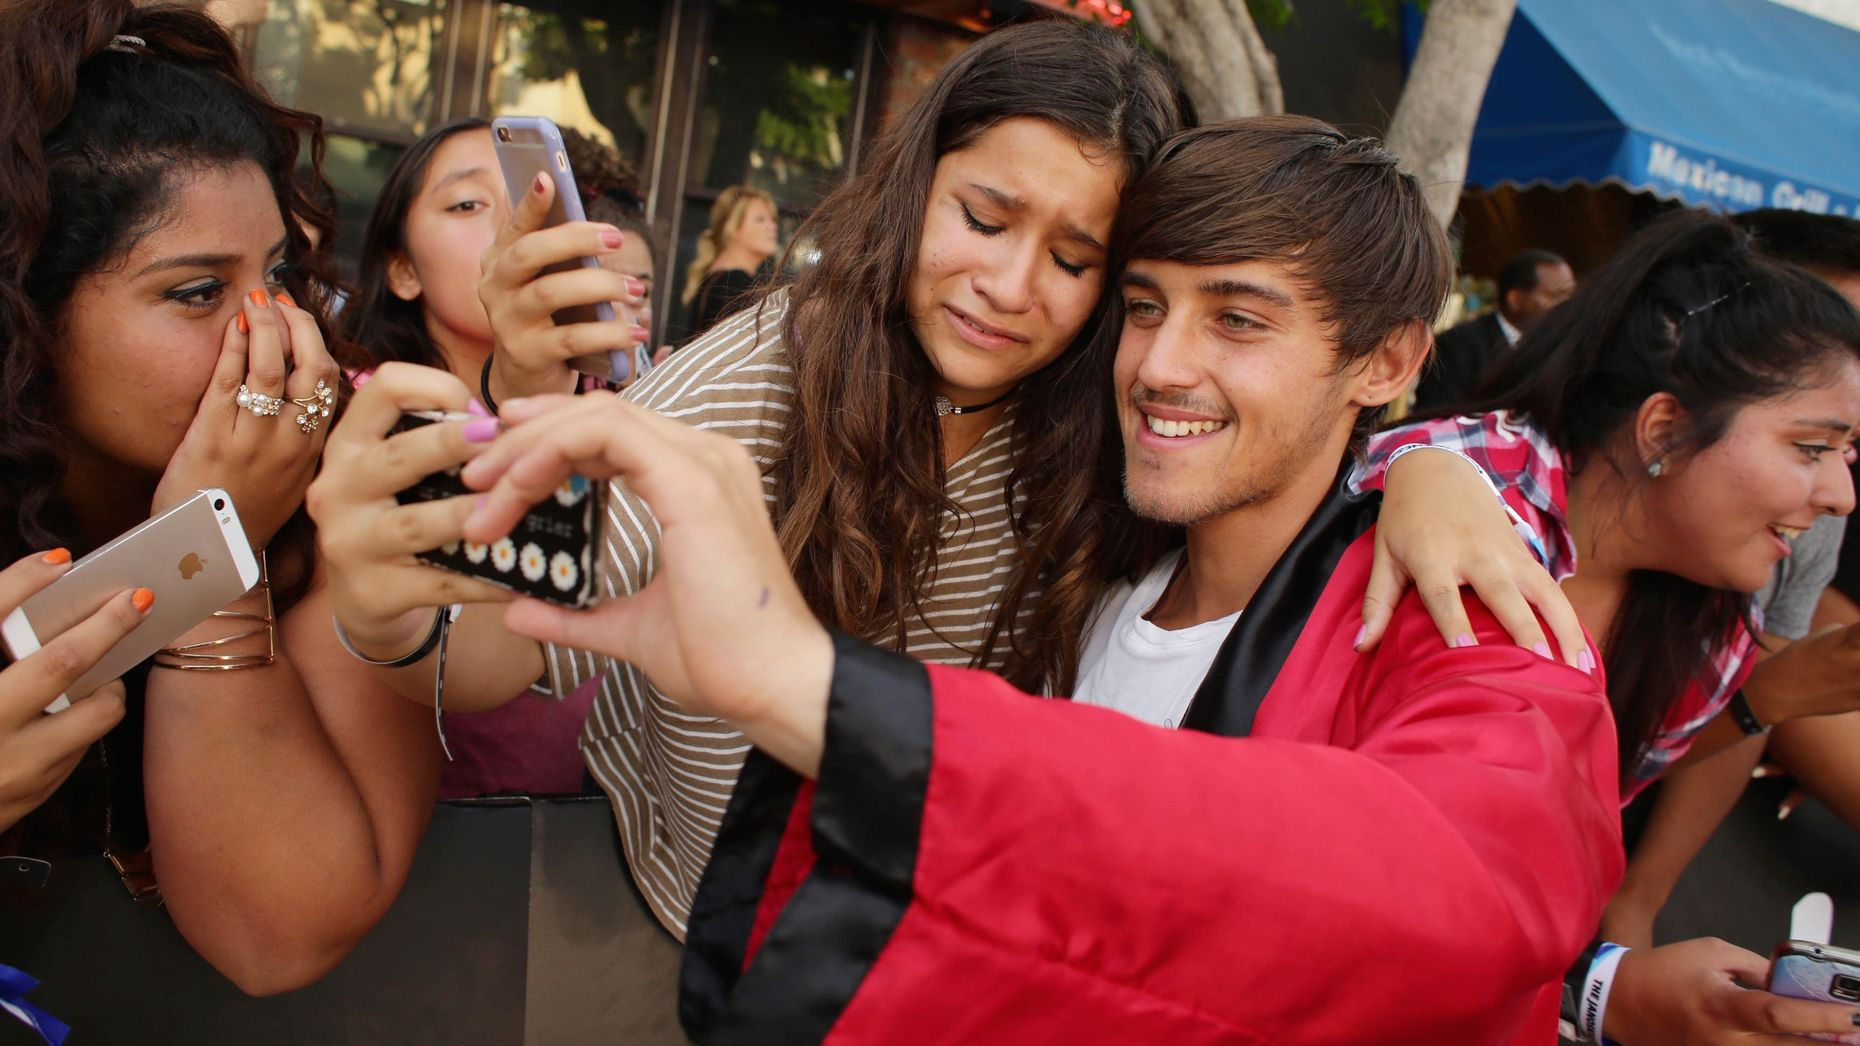 Beau Brooks at the  Los Angeles premiere of Awesomeness Film's Janoskians:Untold and Untrue in 2015. Photo by AP